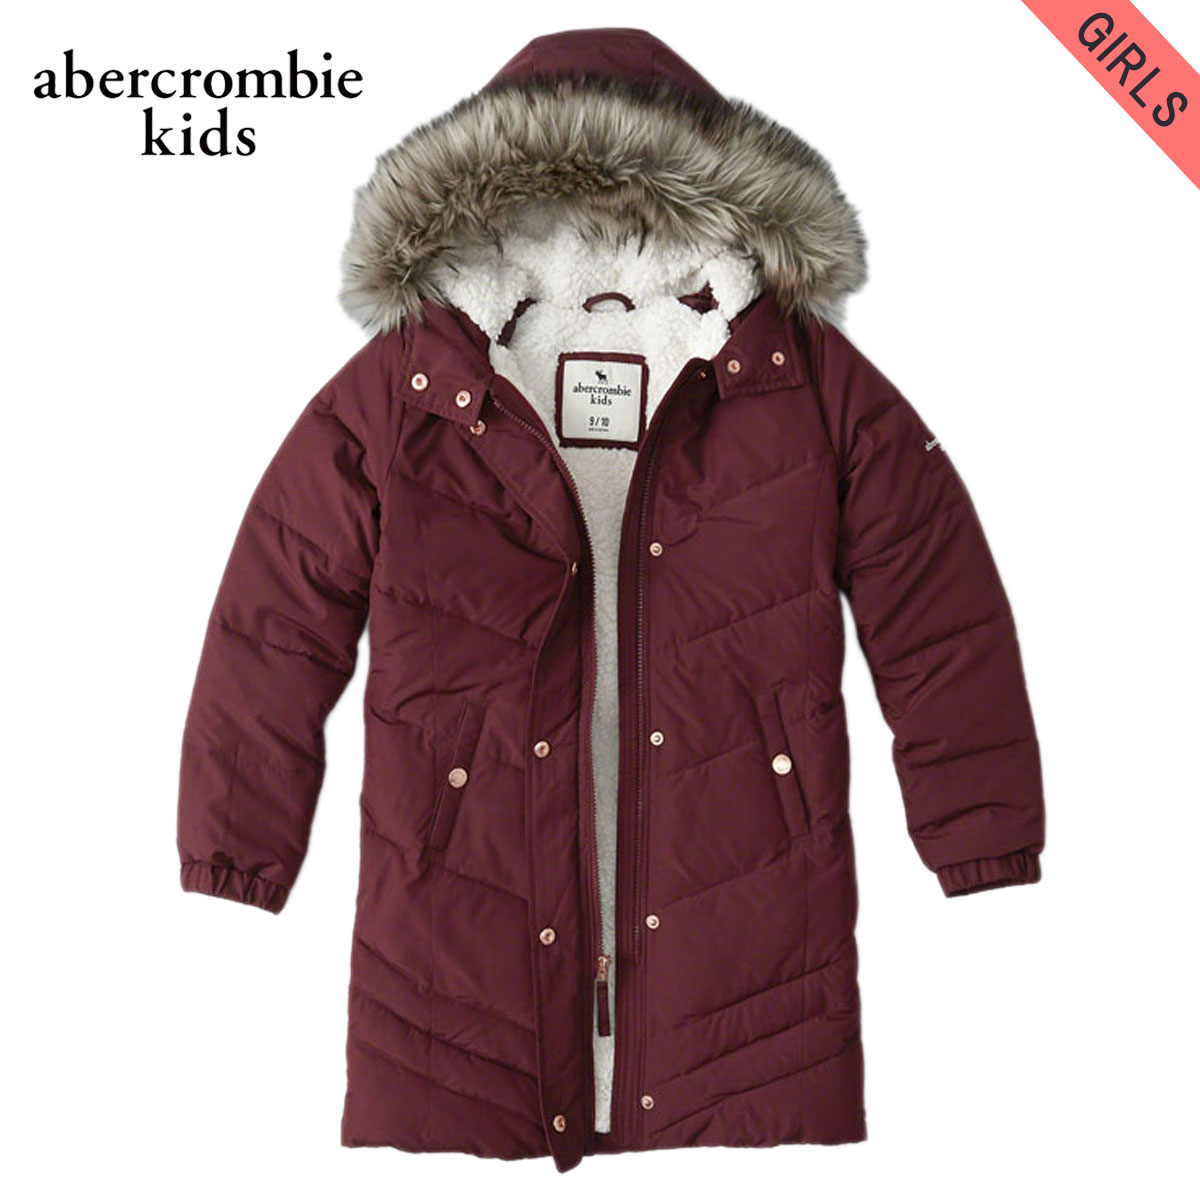 15%OFFセール 【販売期間 12/4 20:00~12/11 1:59】 アバクロキッズ AbercrombieKids 正規品 子供服 ガールズ コート sherpa-lined quilted parka 244-856-0221-052 D00S20